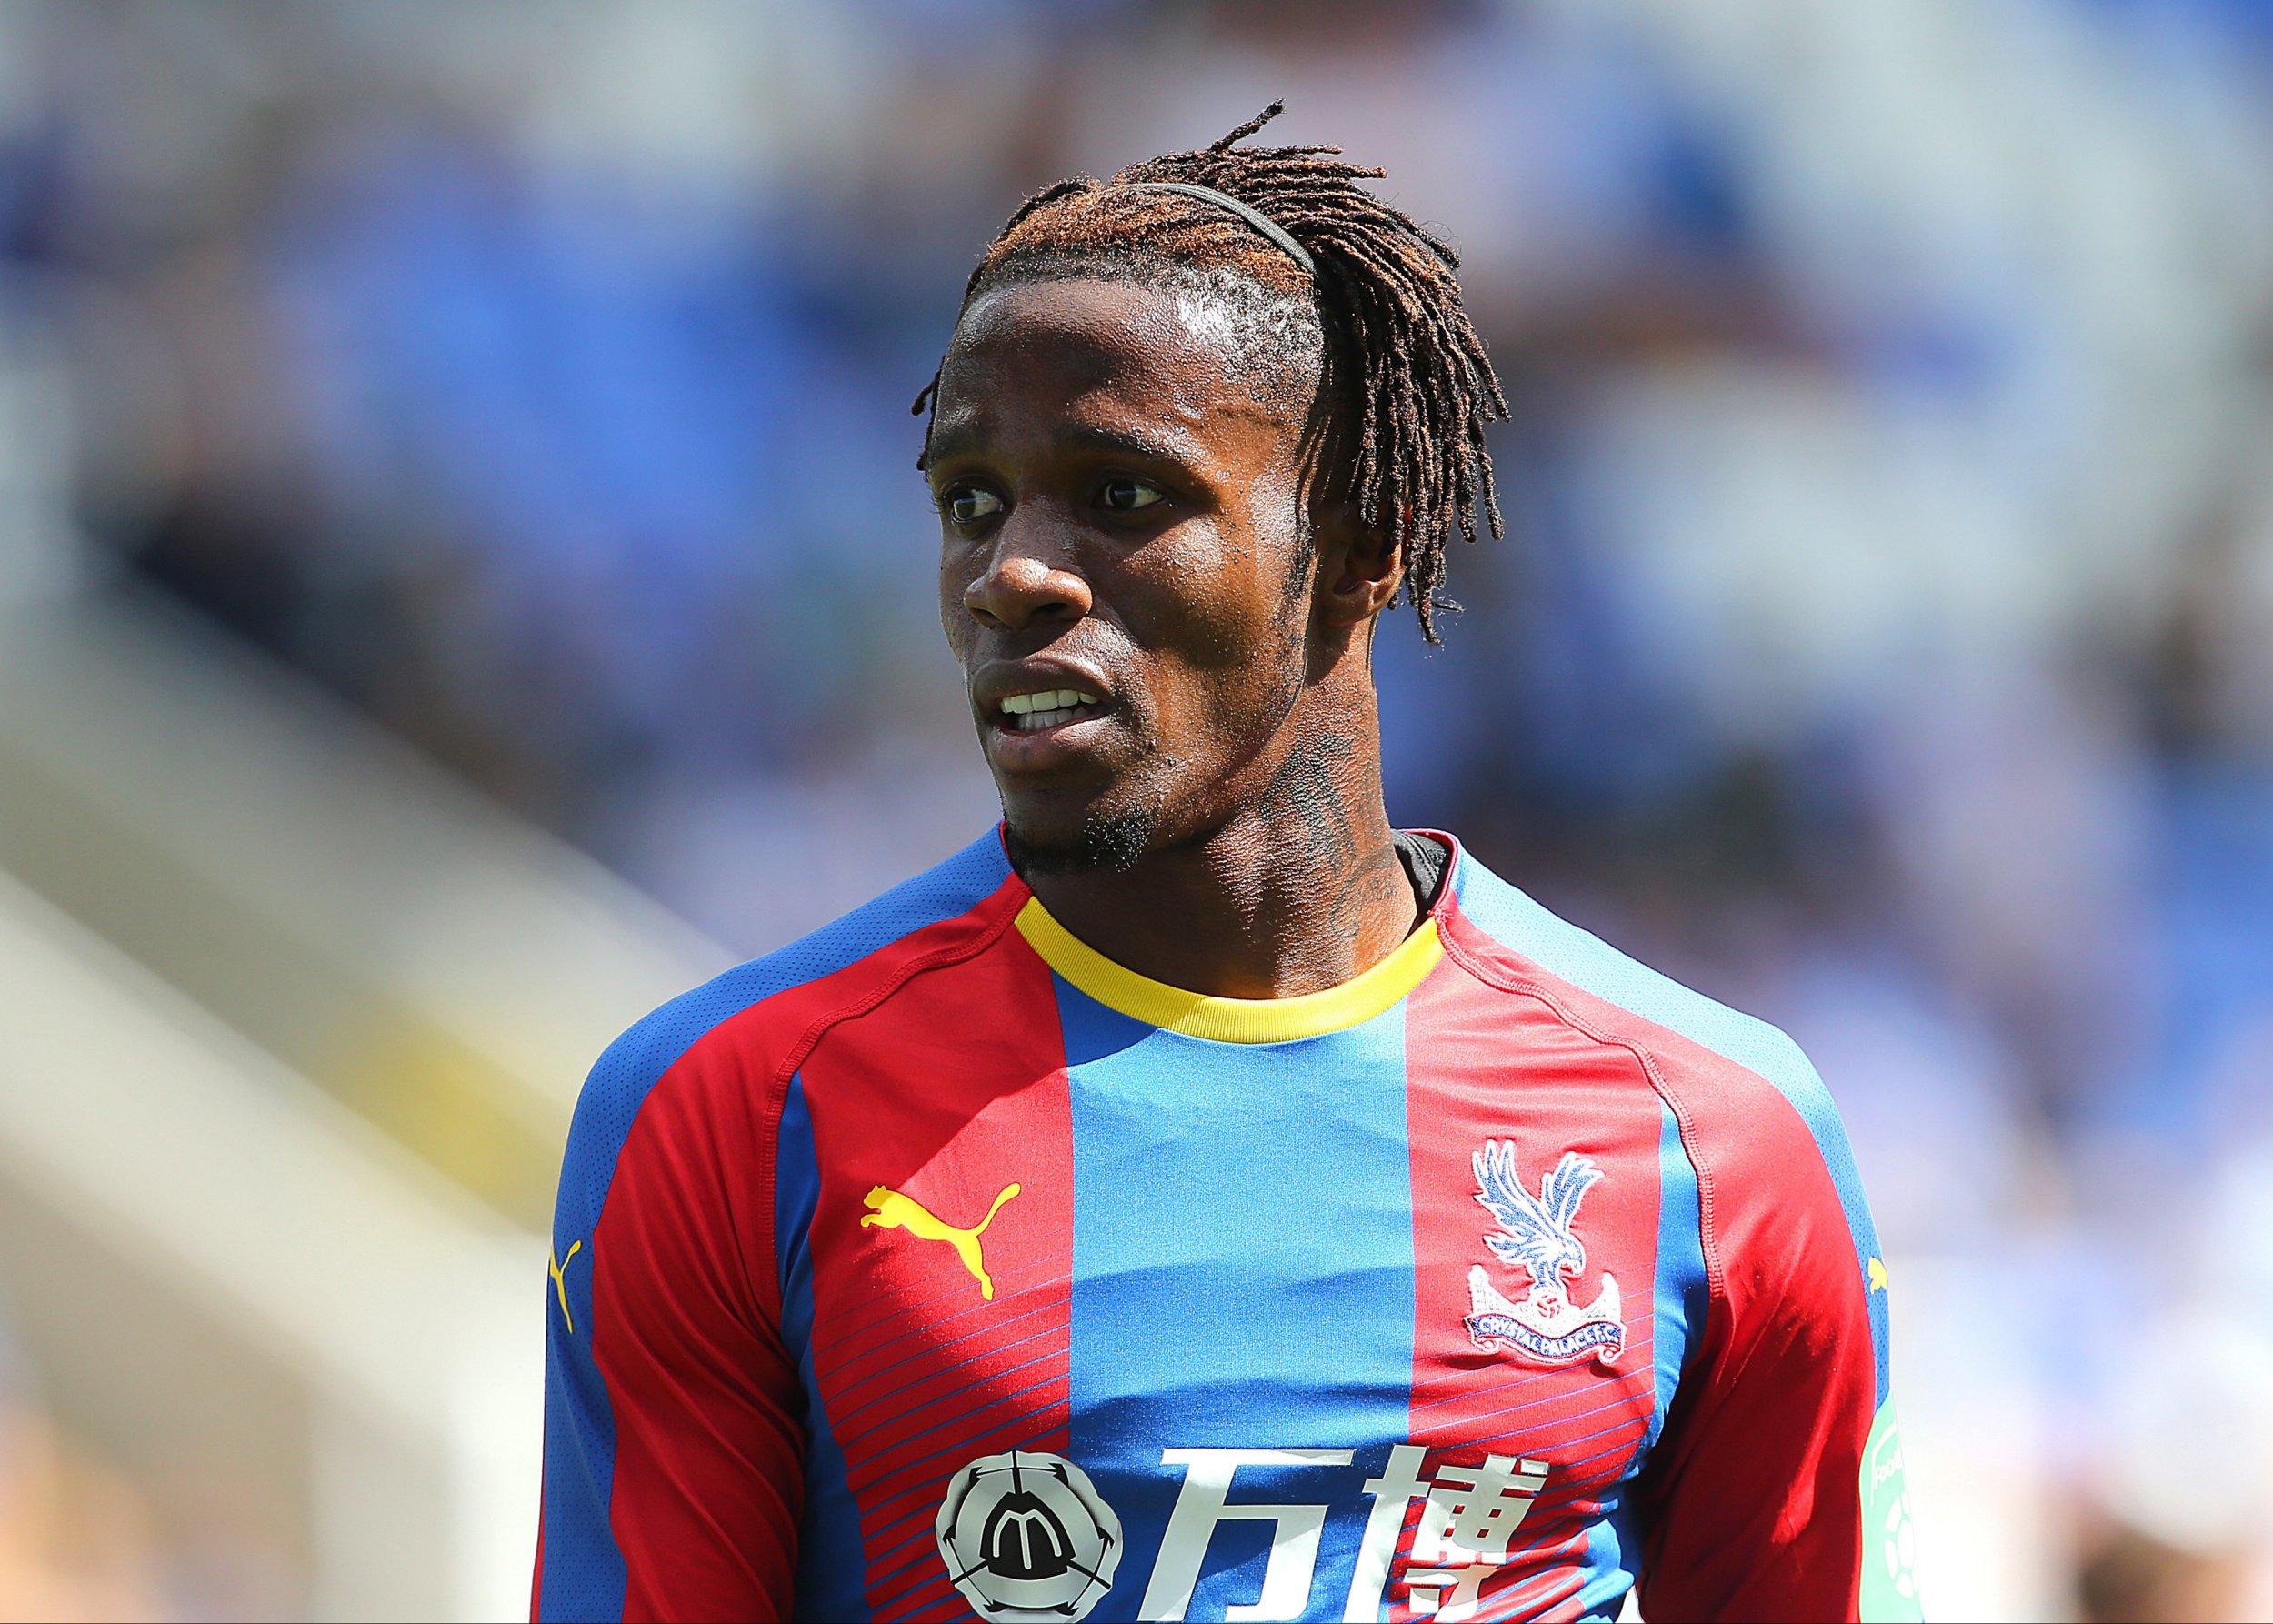 Wilfried Zaha wants to join Chelsea from Crystal Palace before transfer window closes